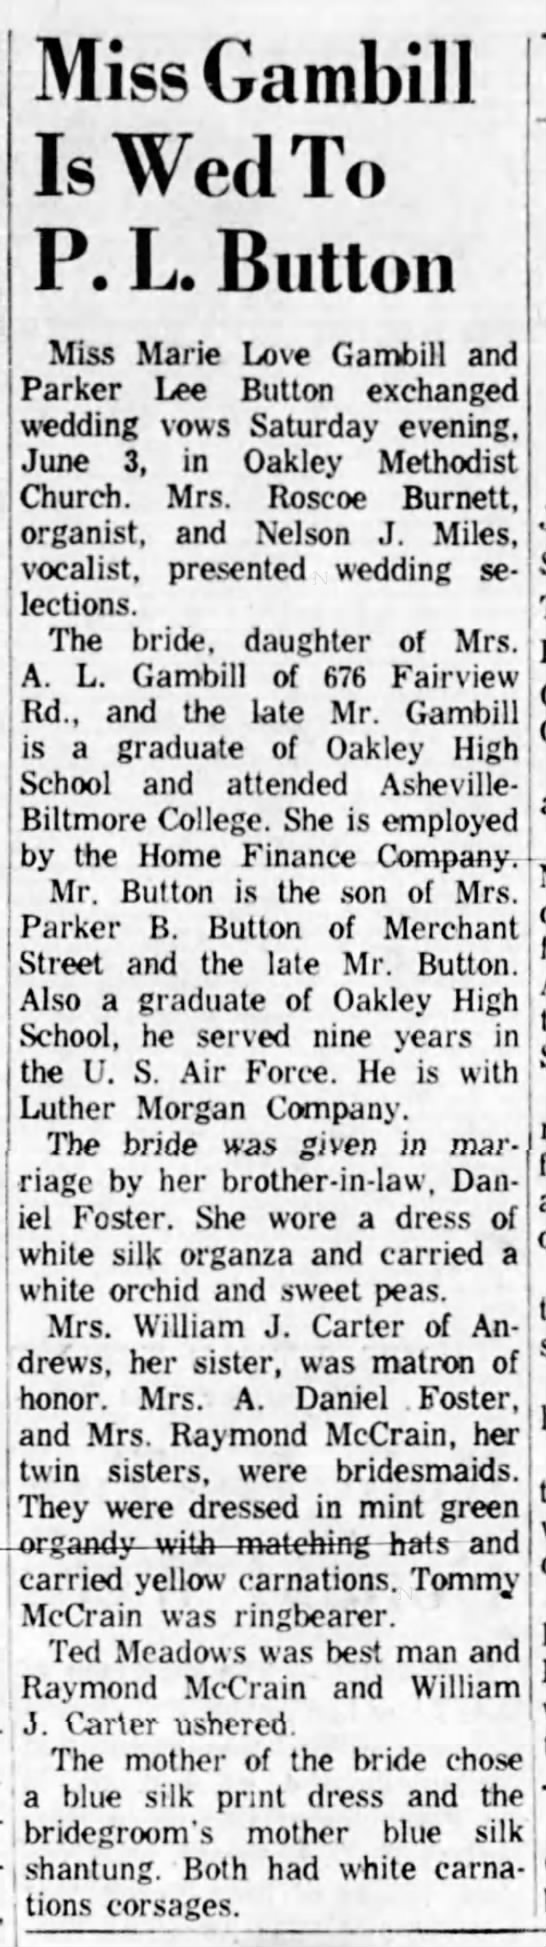 Marie L Gambill marriage announcement to P L Button 1961 North Carolina -